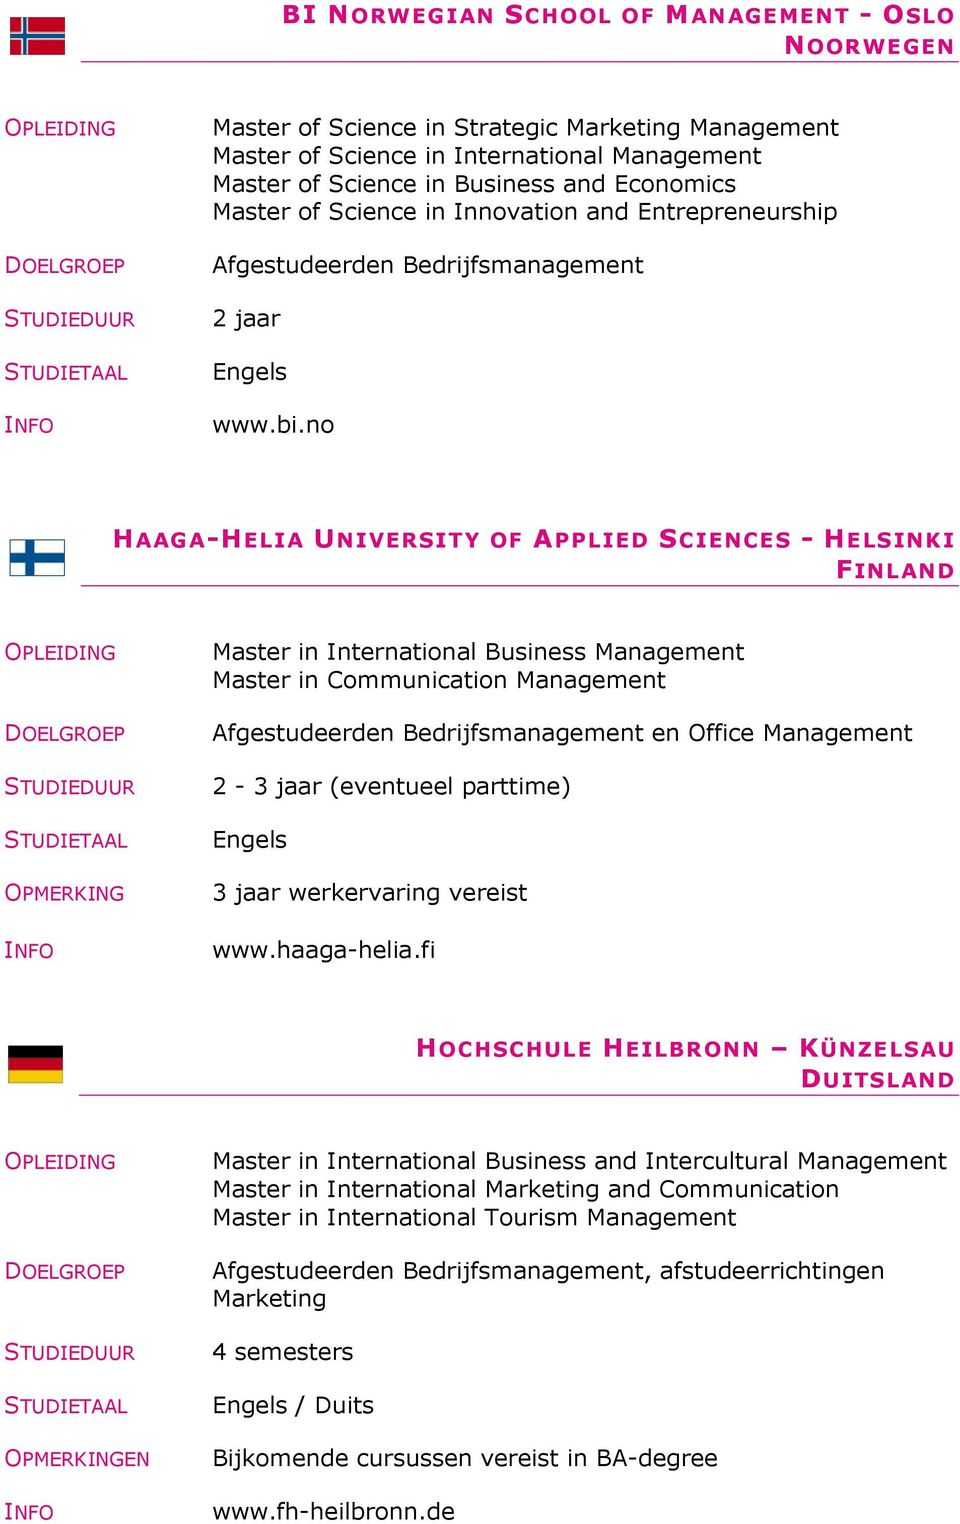 no HAAGA-HELIA UNIVERSITY OF APPLIED SCIENCES - HELSINKI FINLAND OPMERKING Master in International Business Management Master in Communication Management 2-3 jaar (eventueel parttime) 3 jaar